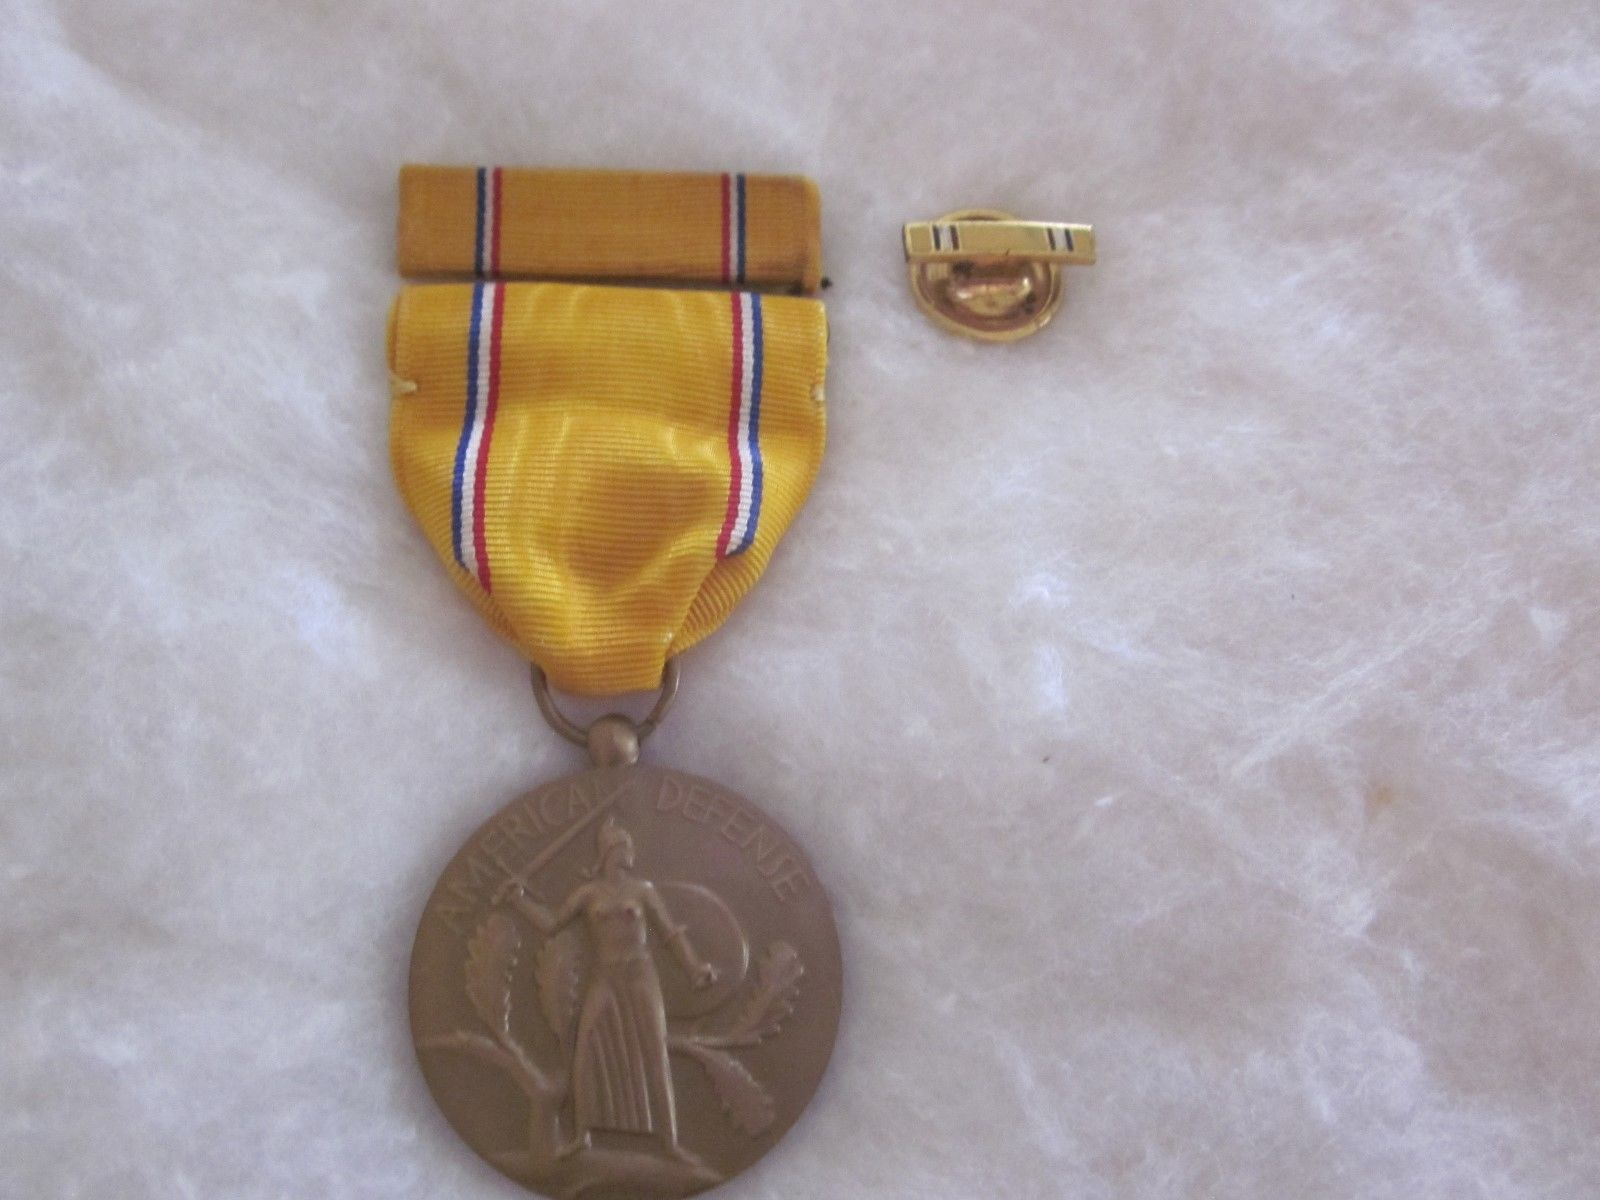 American Defense Service Medal, 1939-1941 with ribbon bar and lapel pin